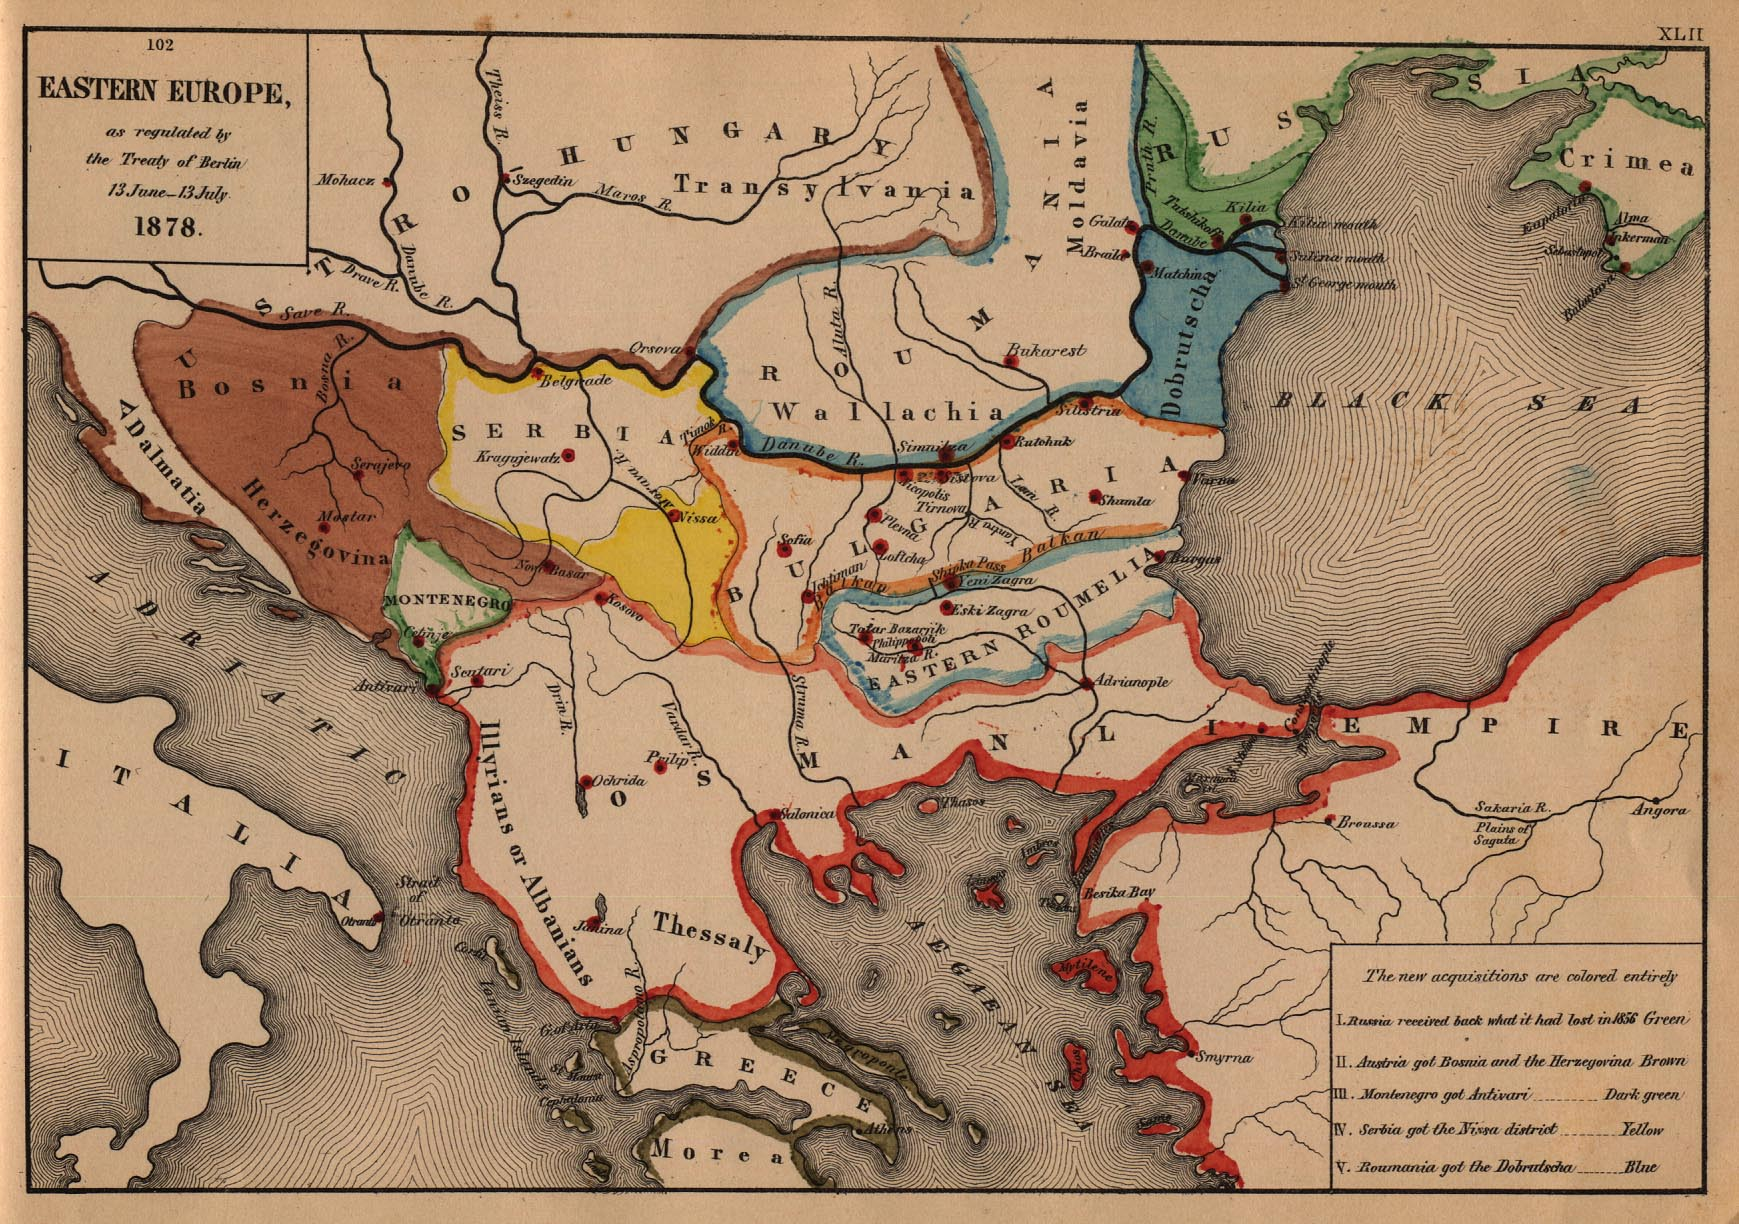 Eastern Europe Map 1878 Full size